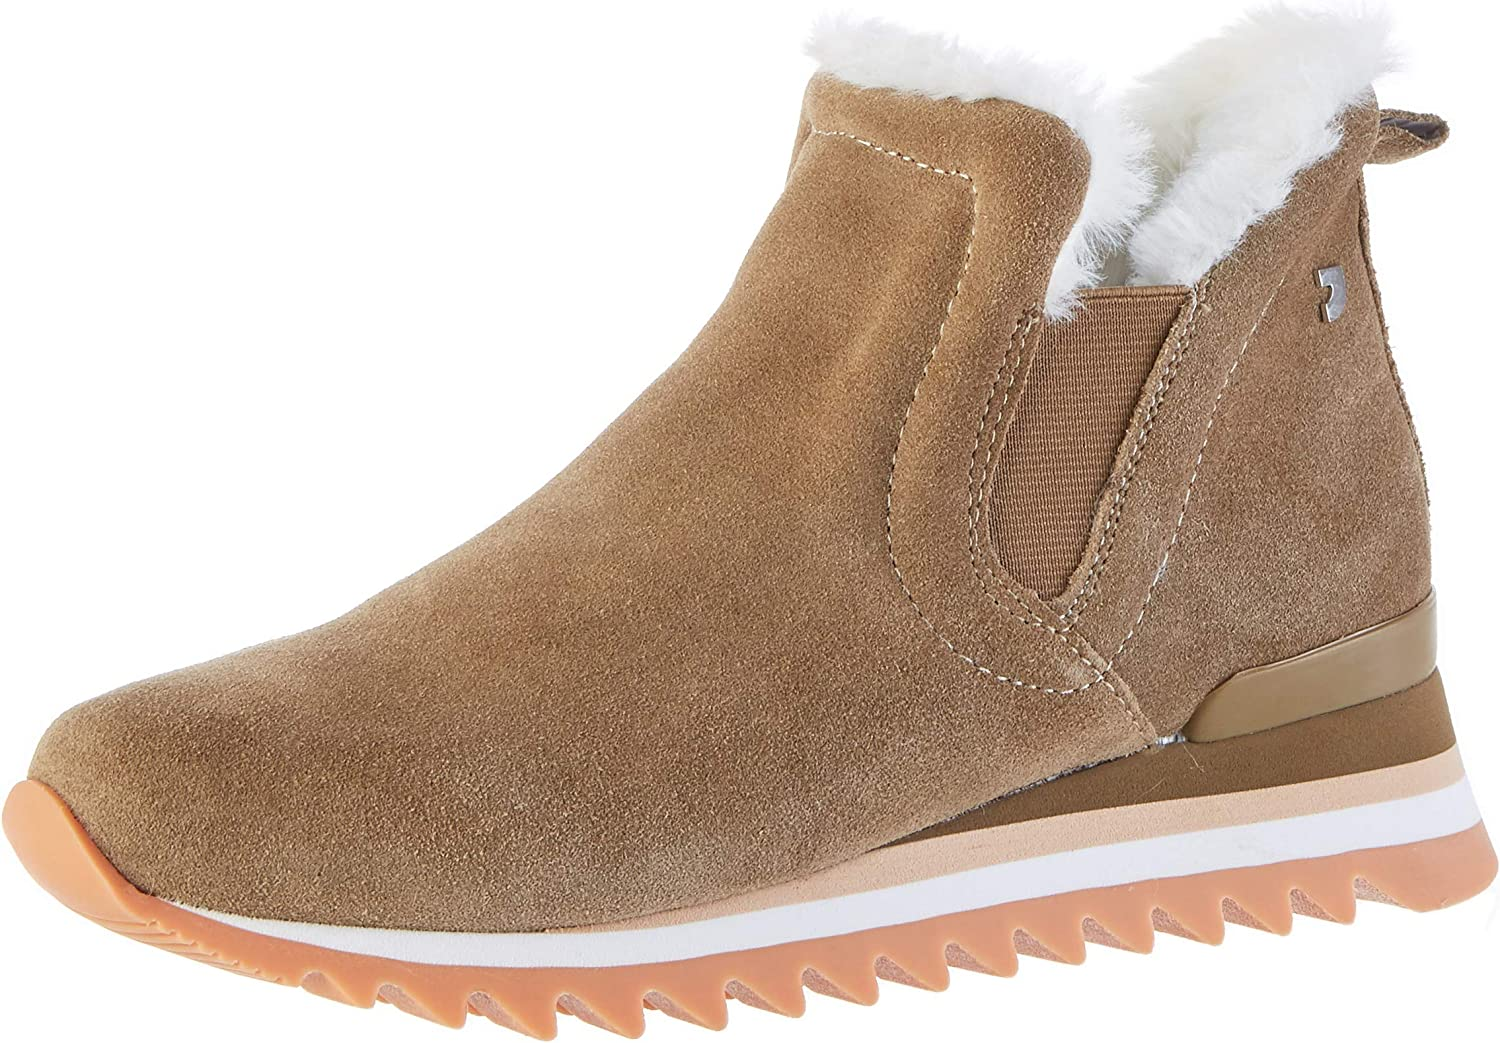 GIOSEPPO Women's Max Fort Worth Mall 68% OFF Trainers Low-Top EU Sneakers